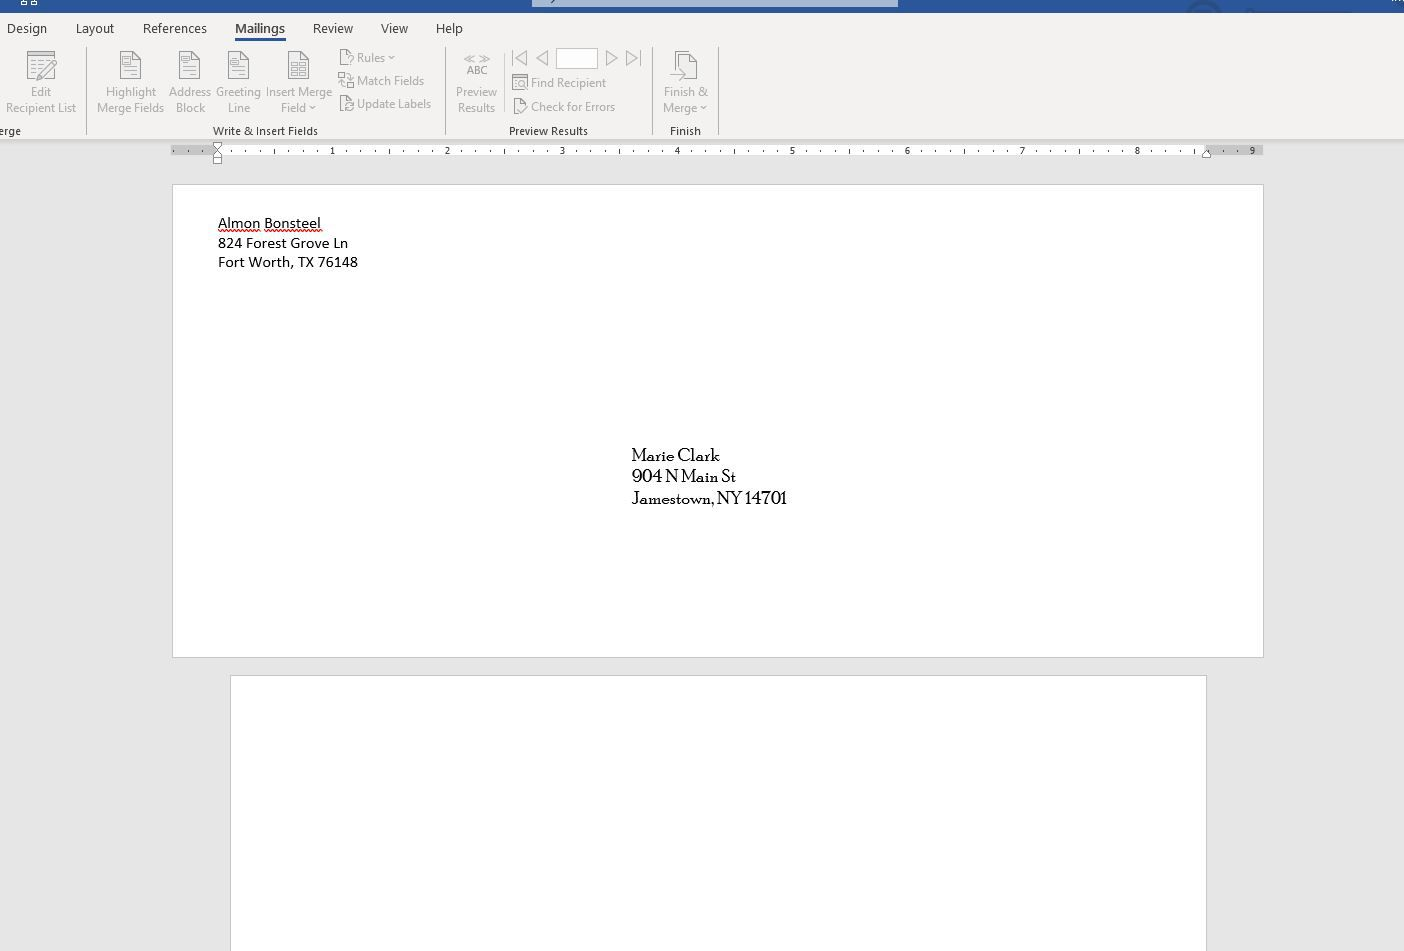 Screenshot of envelope added to document in Word